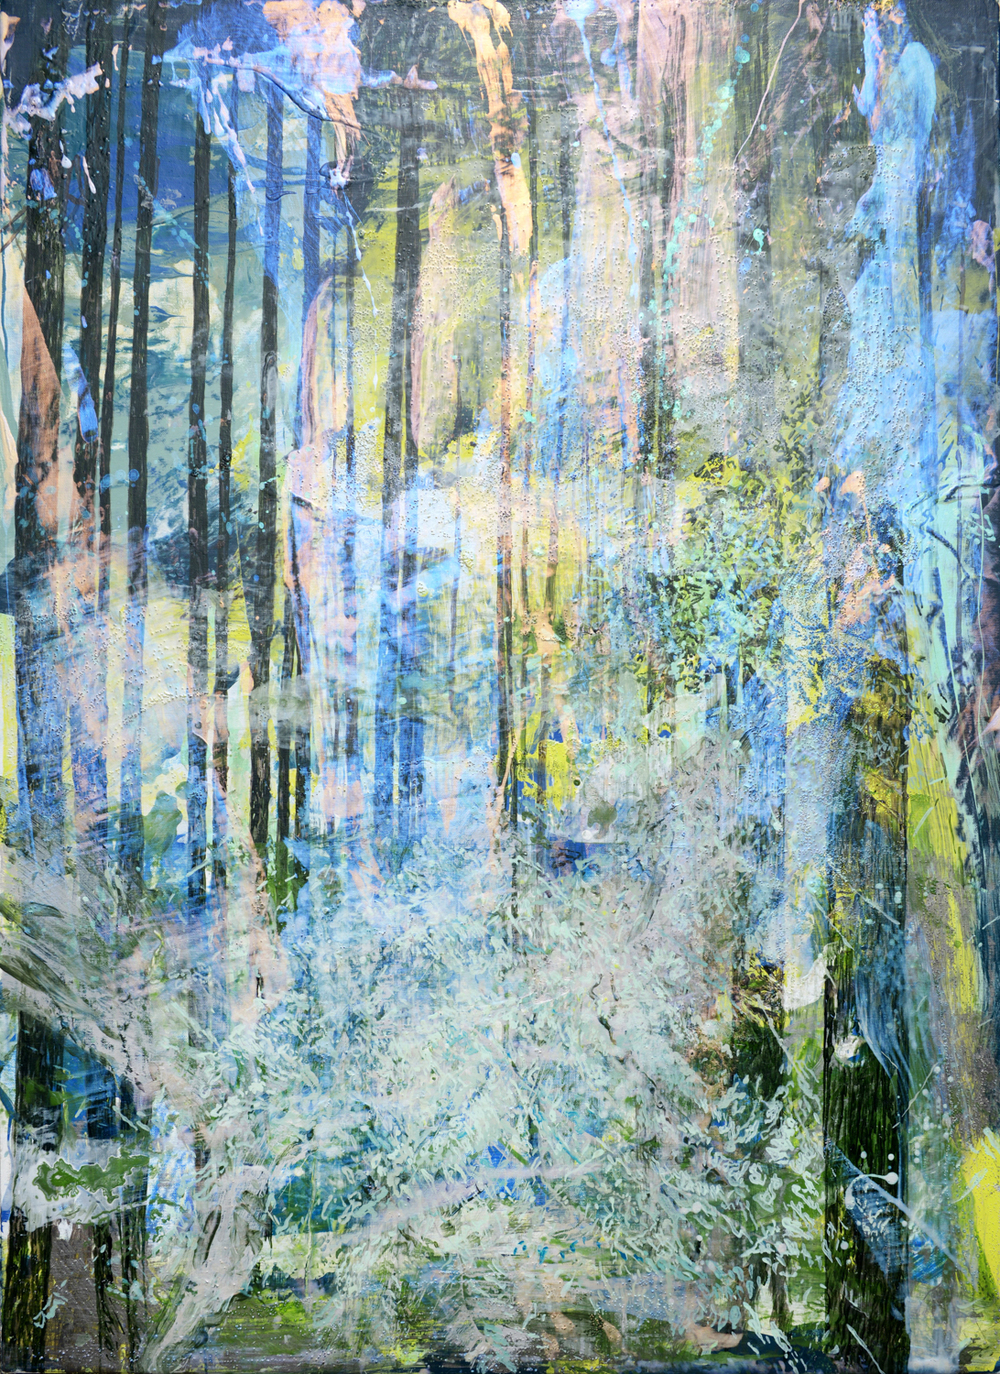 Forest #8 | 森林 #8, 2016, Acrylic on Canvas, 100 x 72.5 cm, SHIU Sheng Hung  | 許聖泓